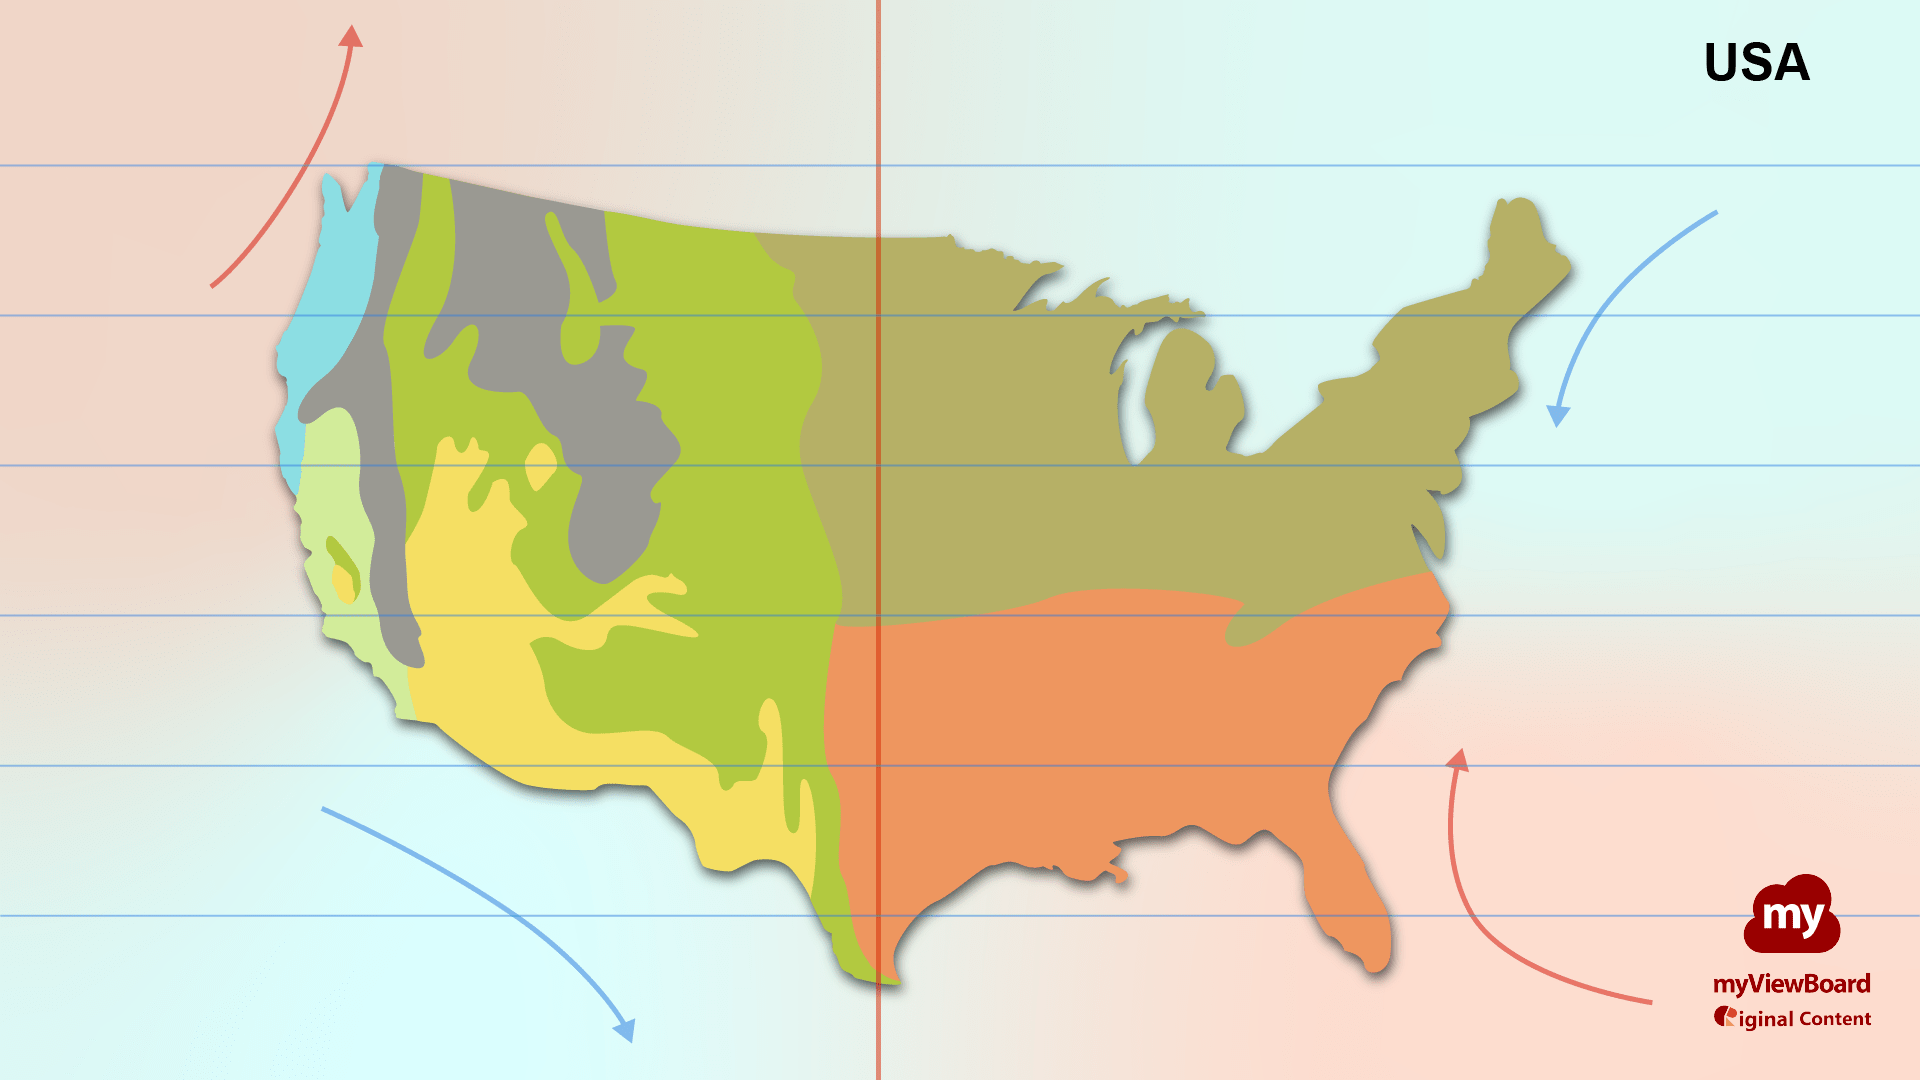 OCBnew thumbnail mixed map of the United States title logo Full HD.png